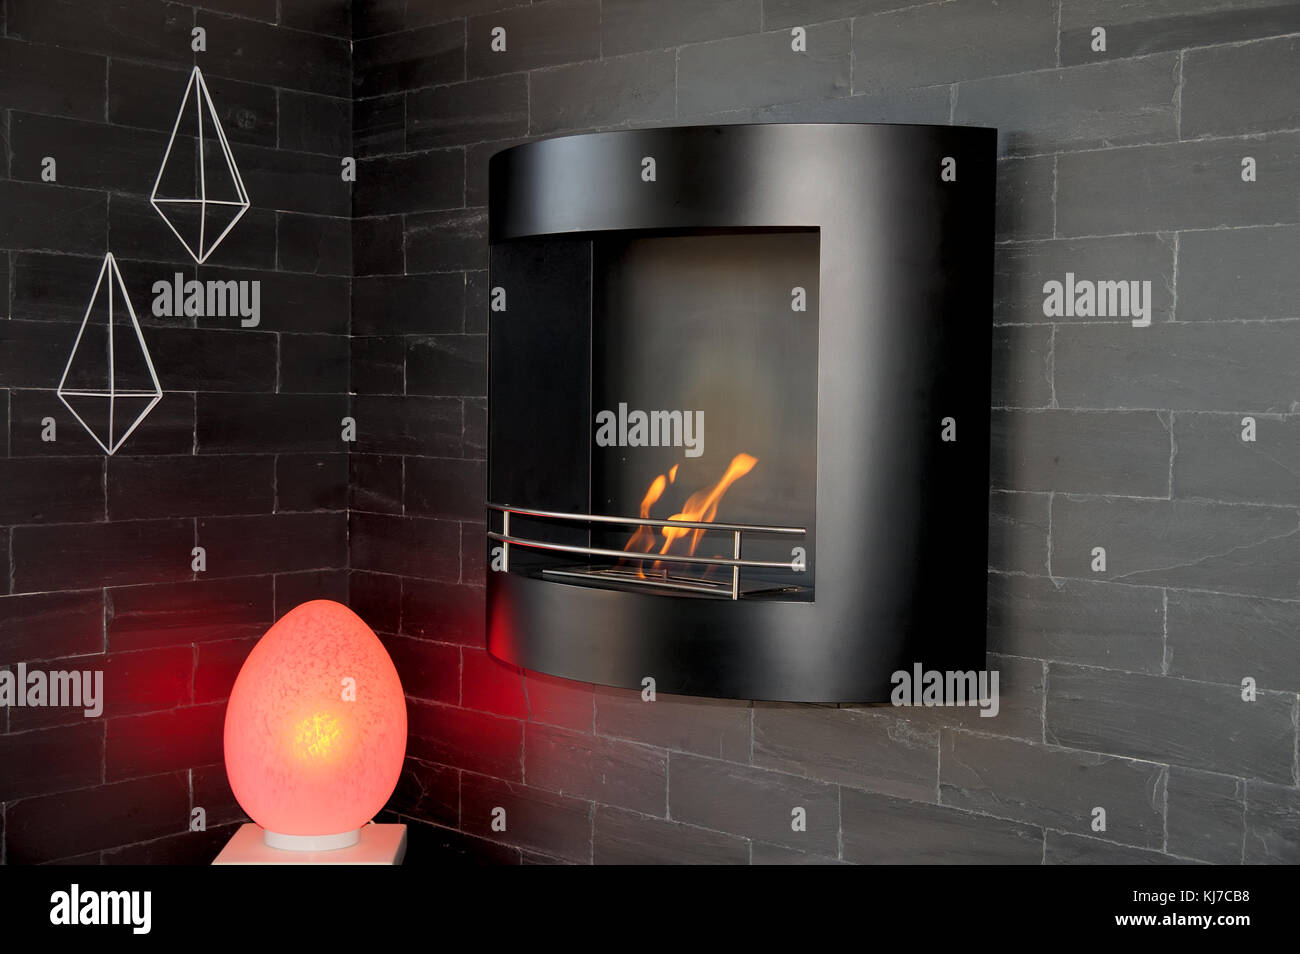 Cheminee Ethanol Decorative Wall Mount Bio Ethanol Fireplace On A Black Brickwall With Red